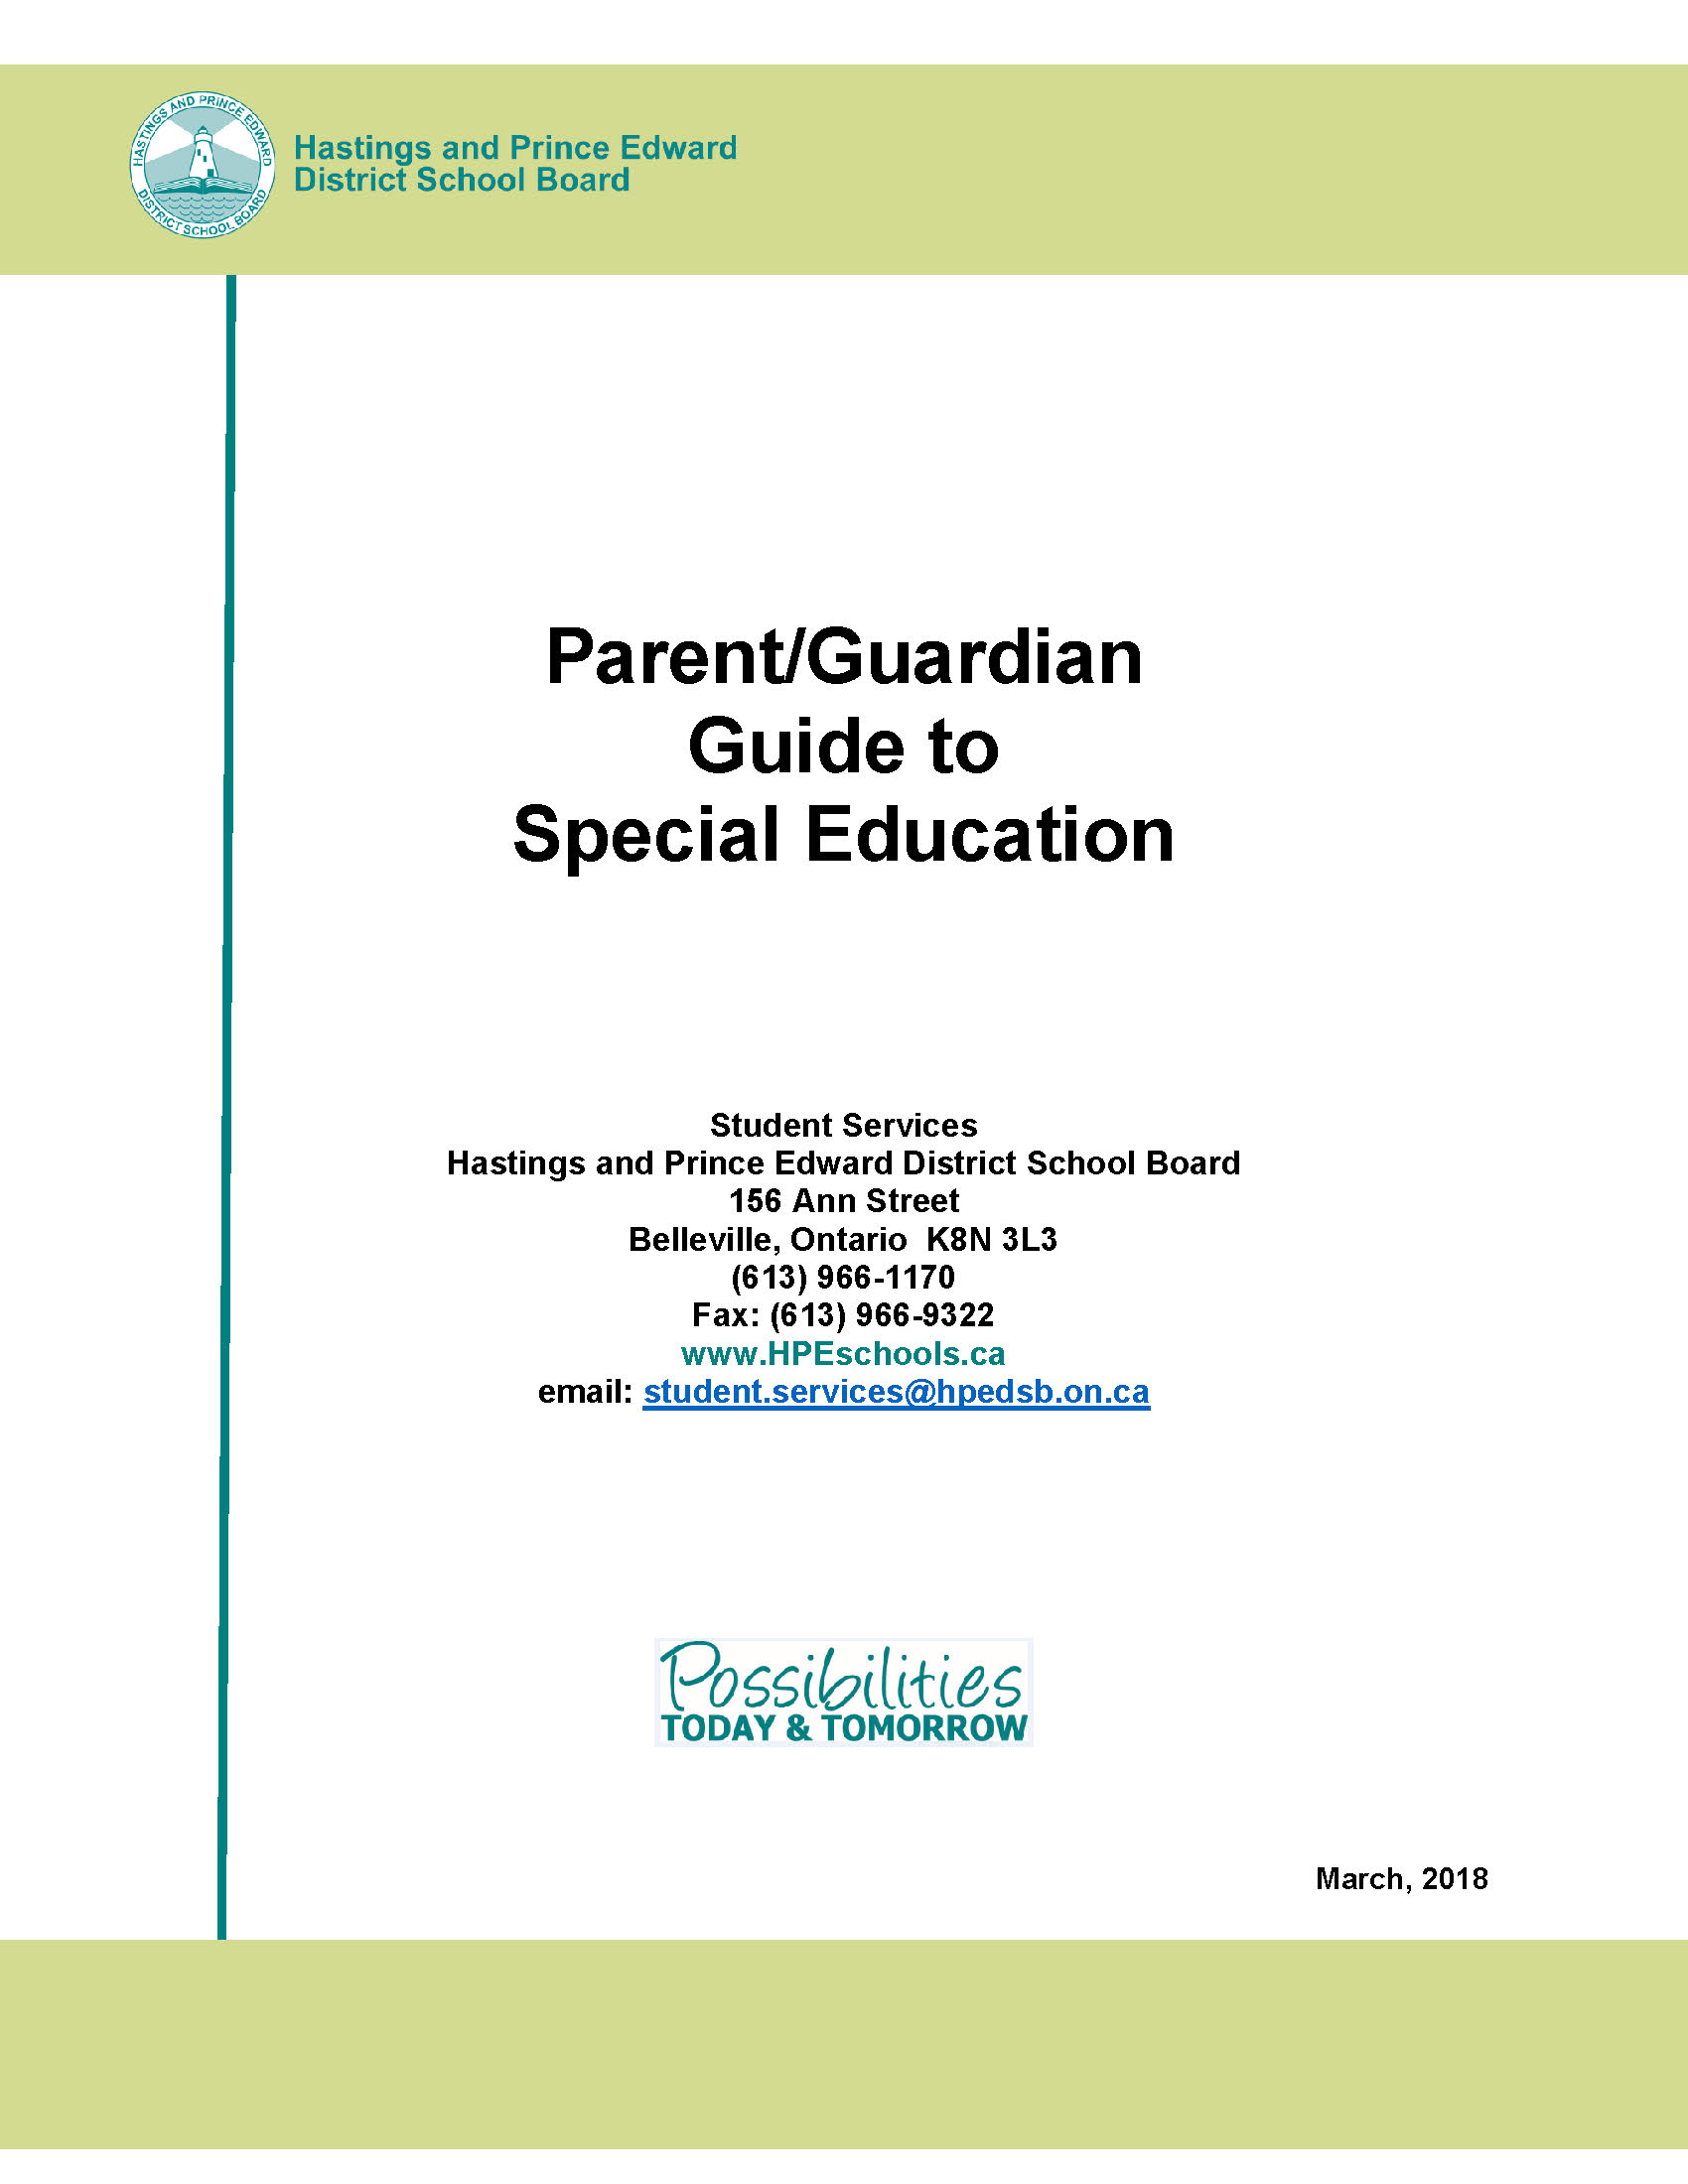 Parent/Guardian Guide to Special Education